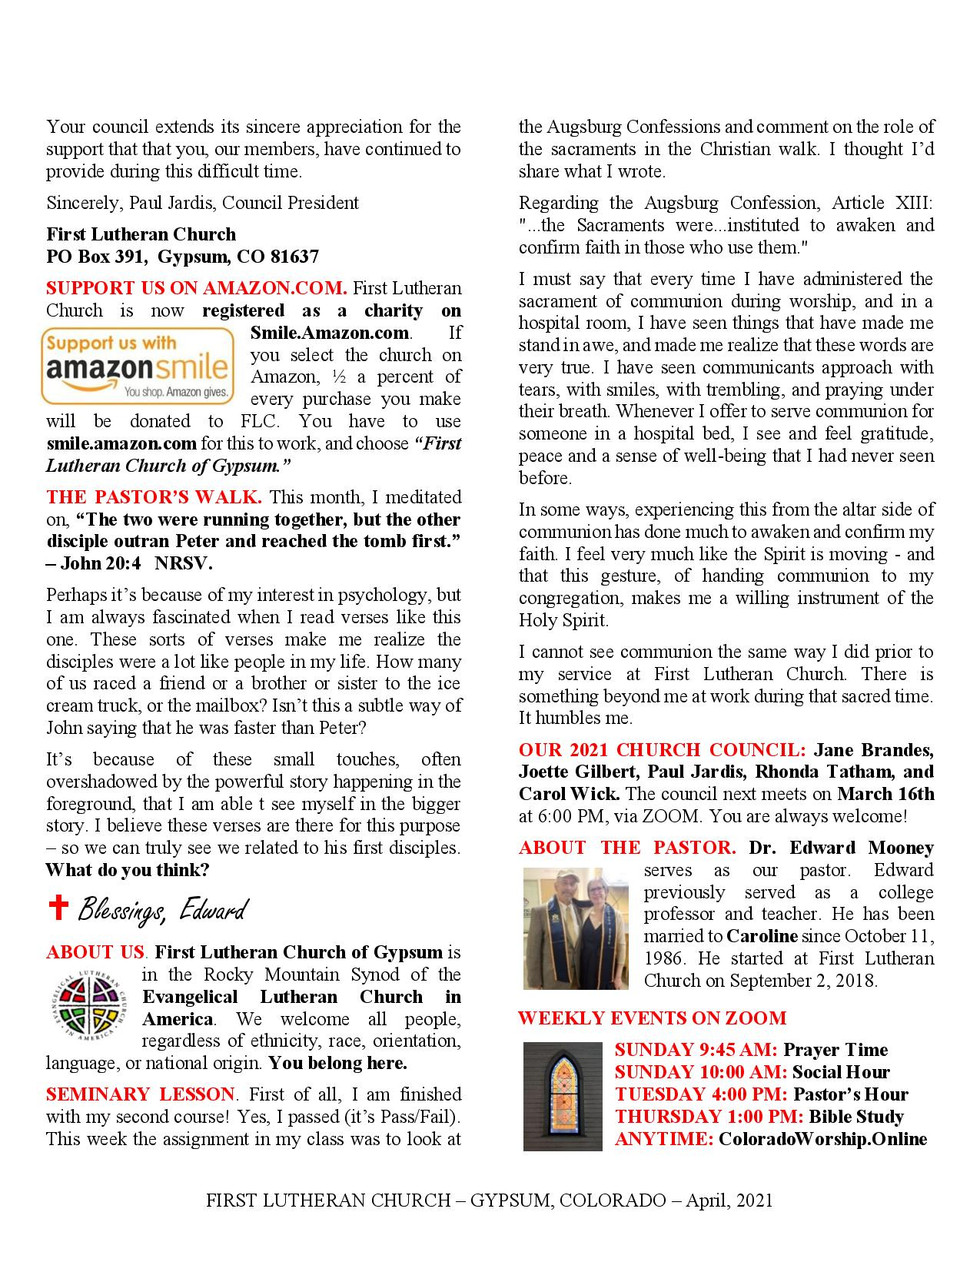 Newsletter for April, 2021. Page 2